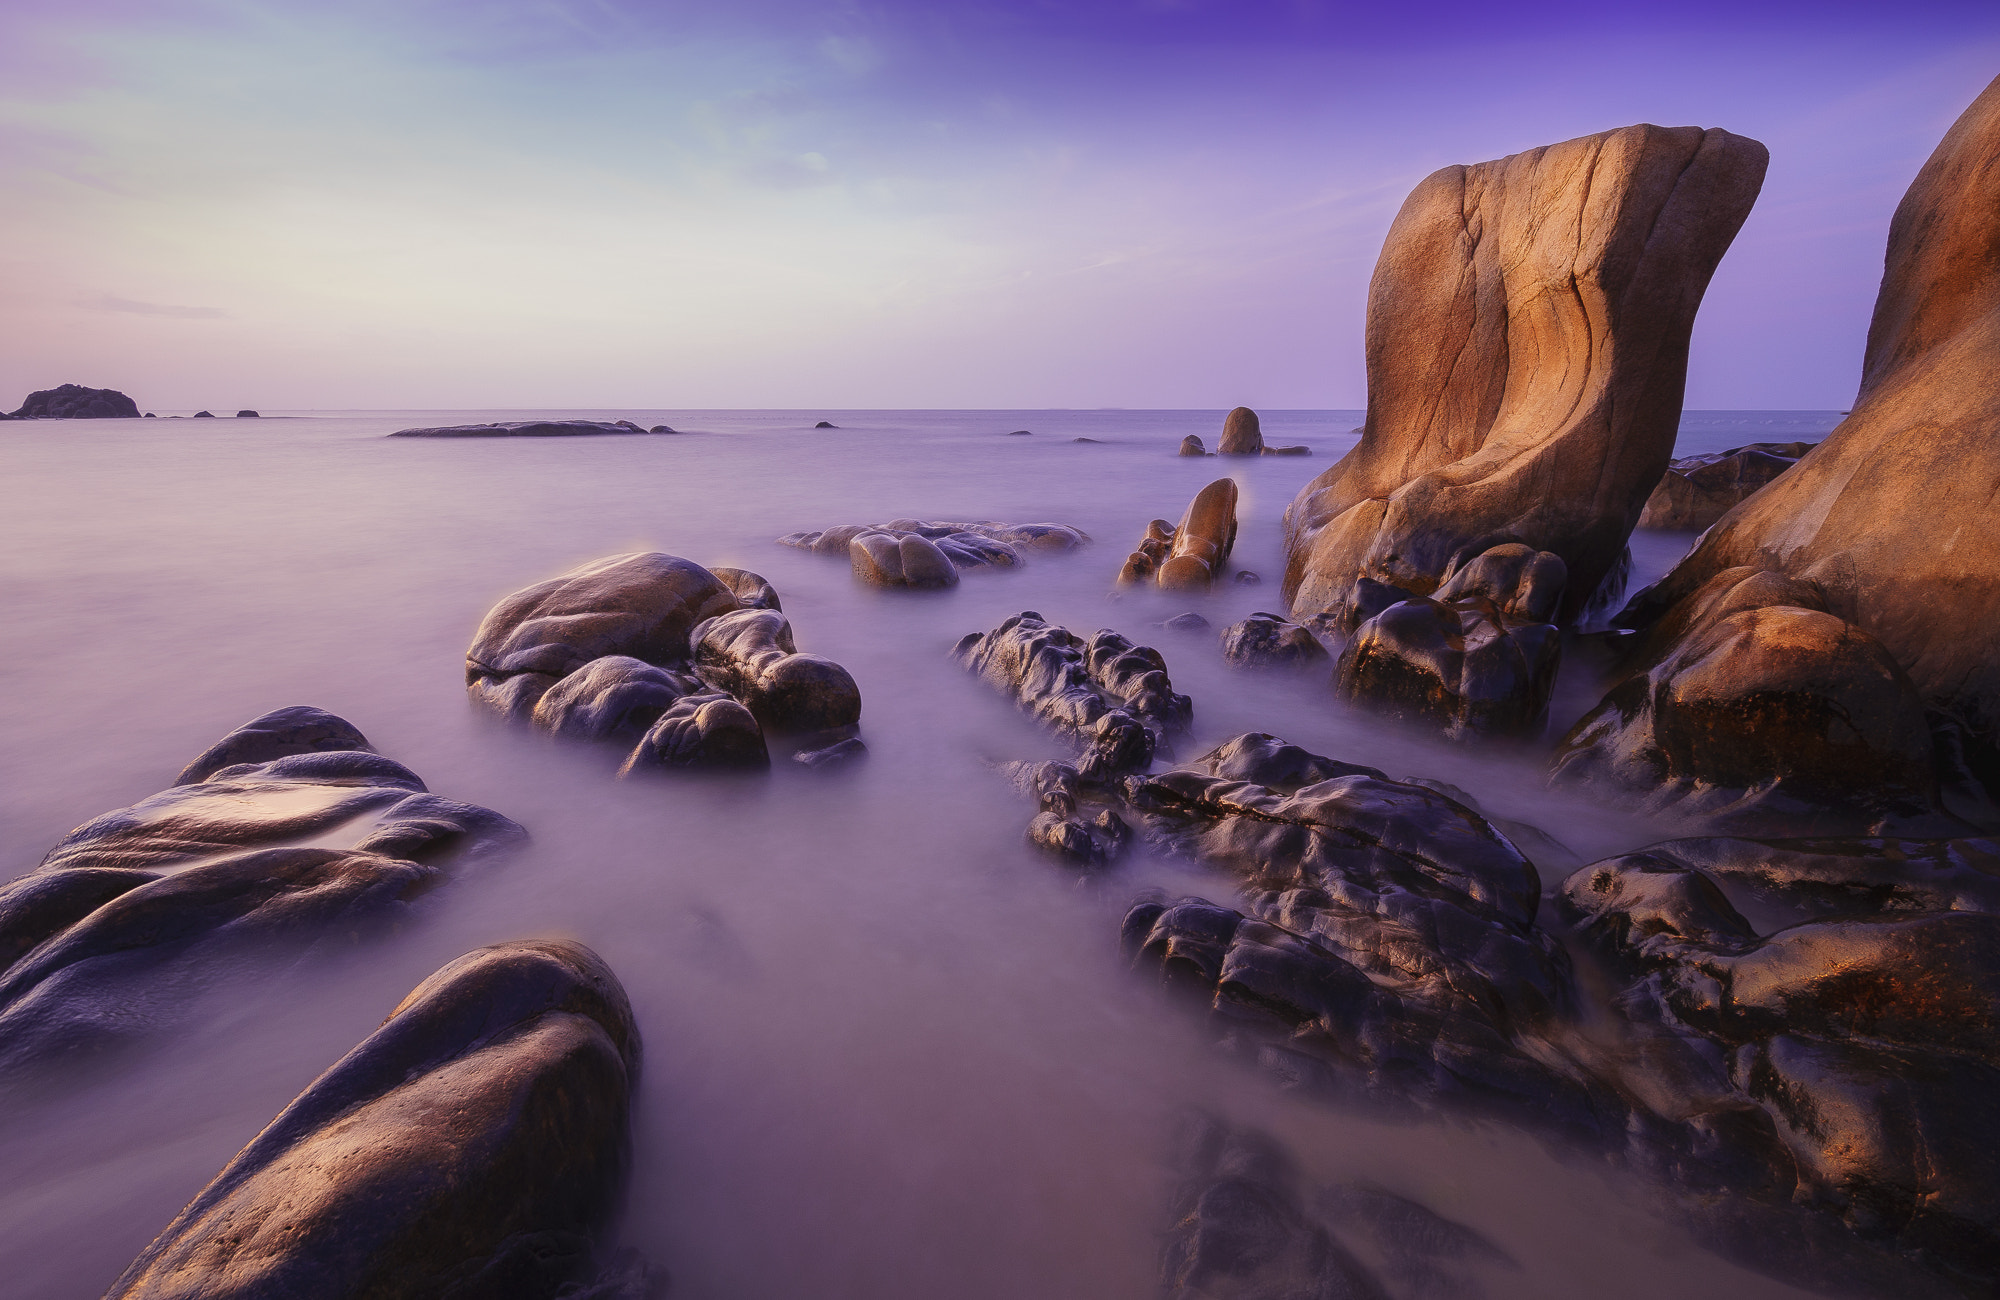 Photograph Co Thach beach 2 by Pham Ty on 500px